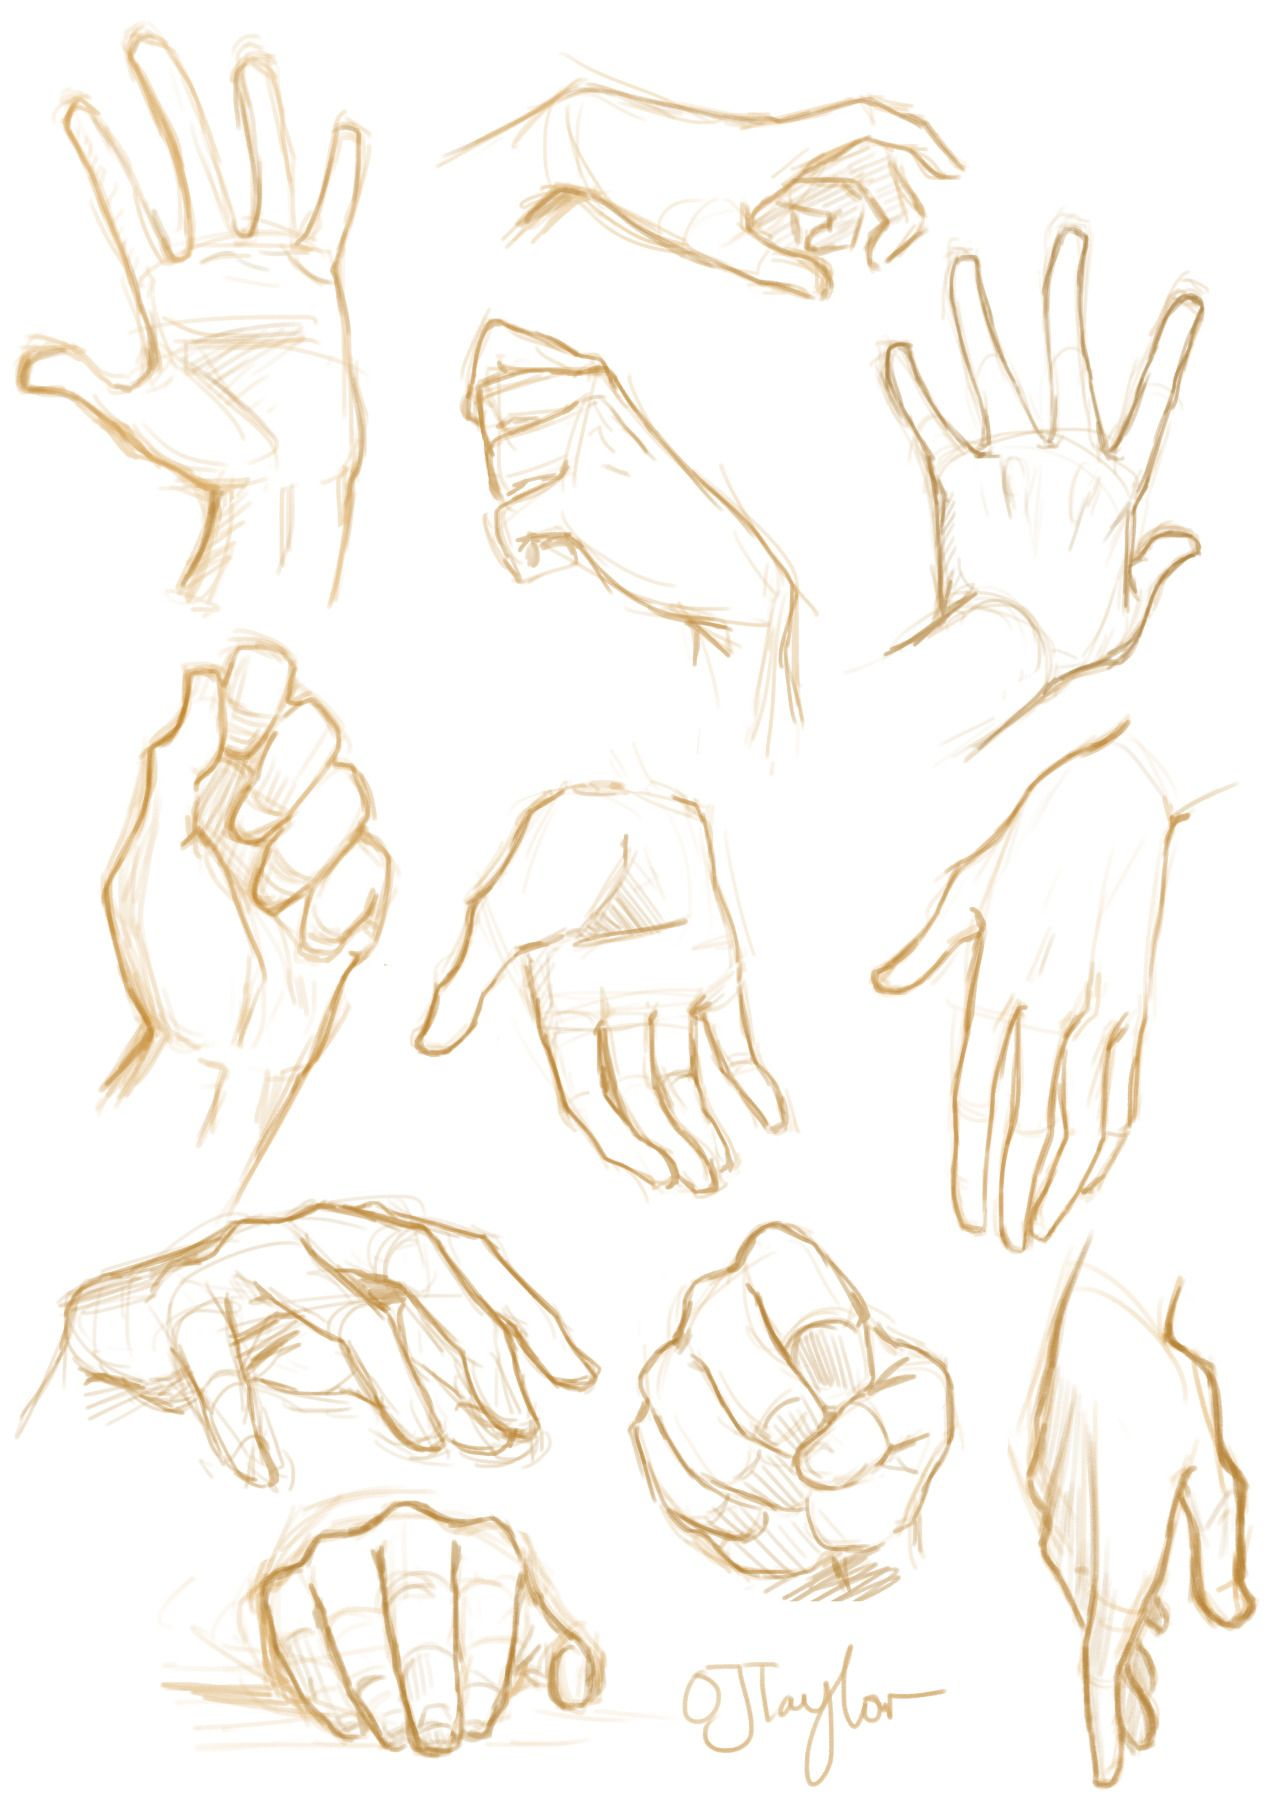 Sketch Hands Tumblr In 2020 Hand Drawing Reference Sketches Drawing Reference Poses